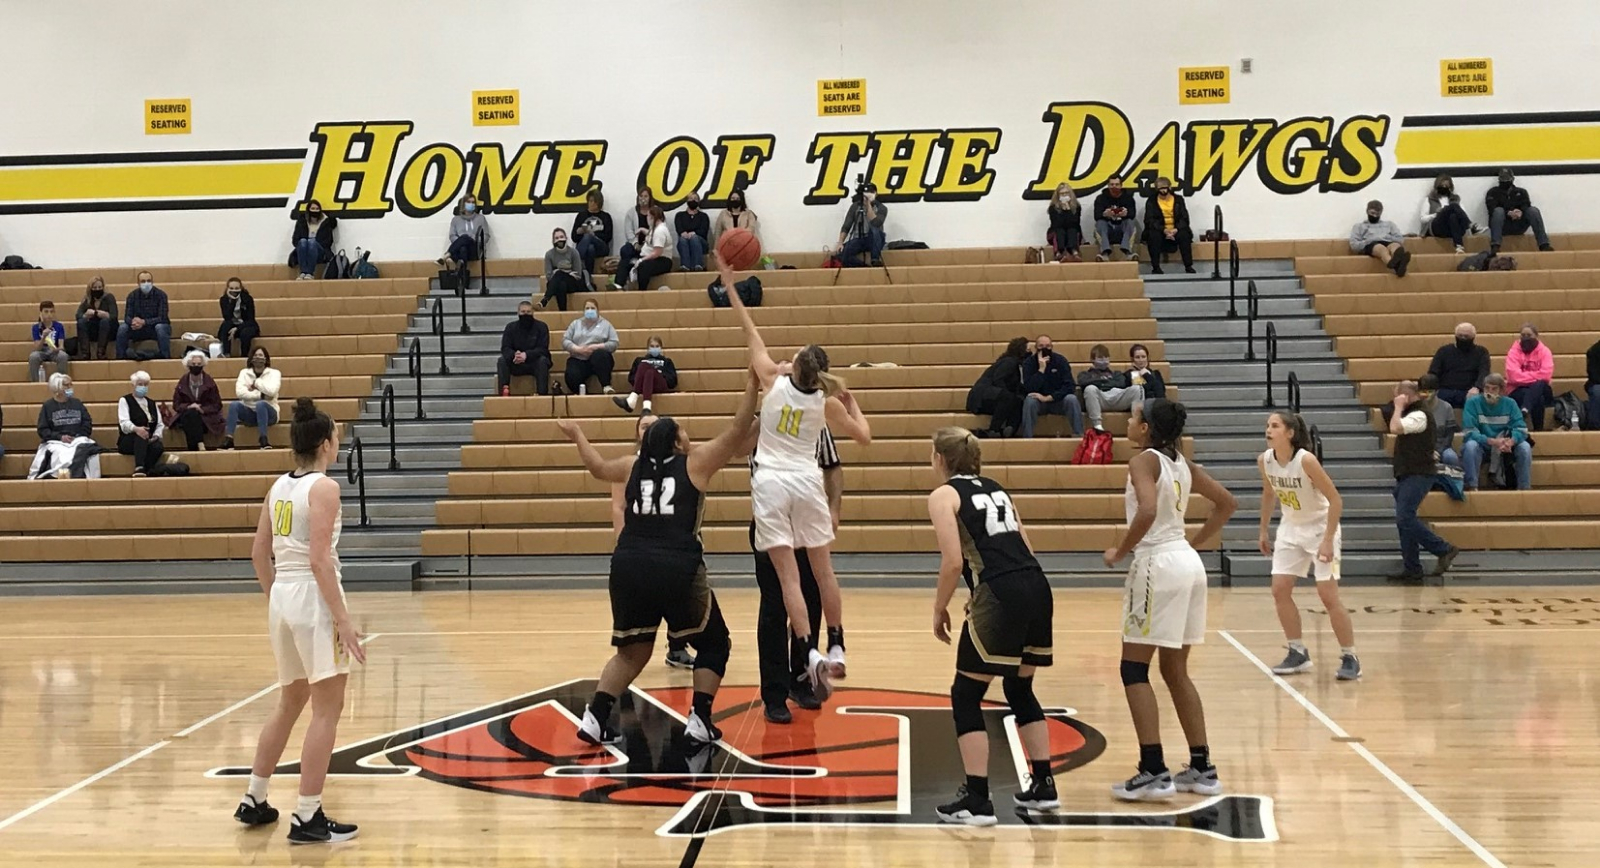 Lady Dawgs take 6th straight with River View win; travel to Coshocton Jan. 13, then big Jan. 16 road trip for 'Classic in the Country' battle vs Lima Bath at Hiland HS